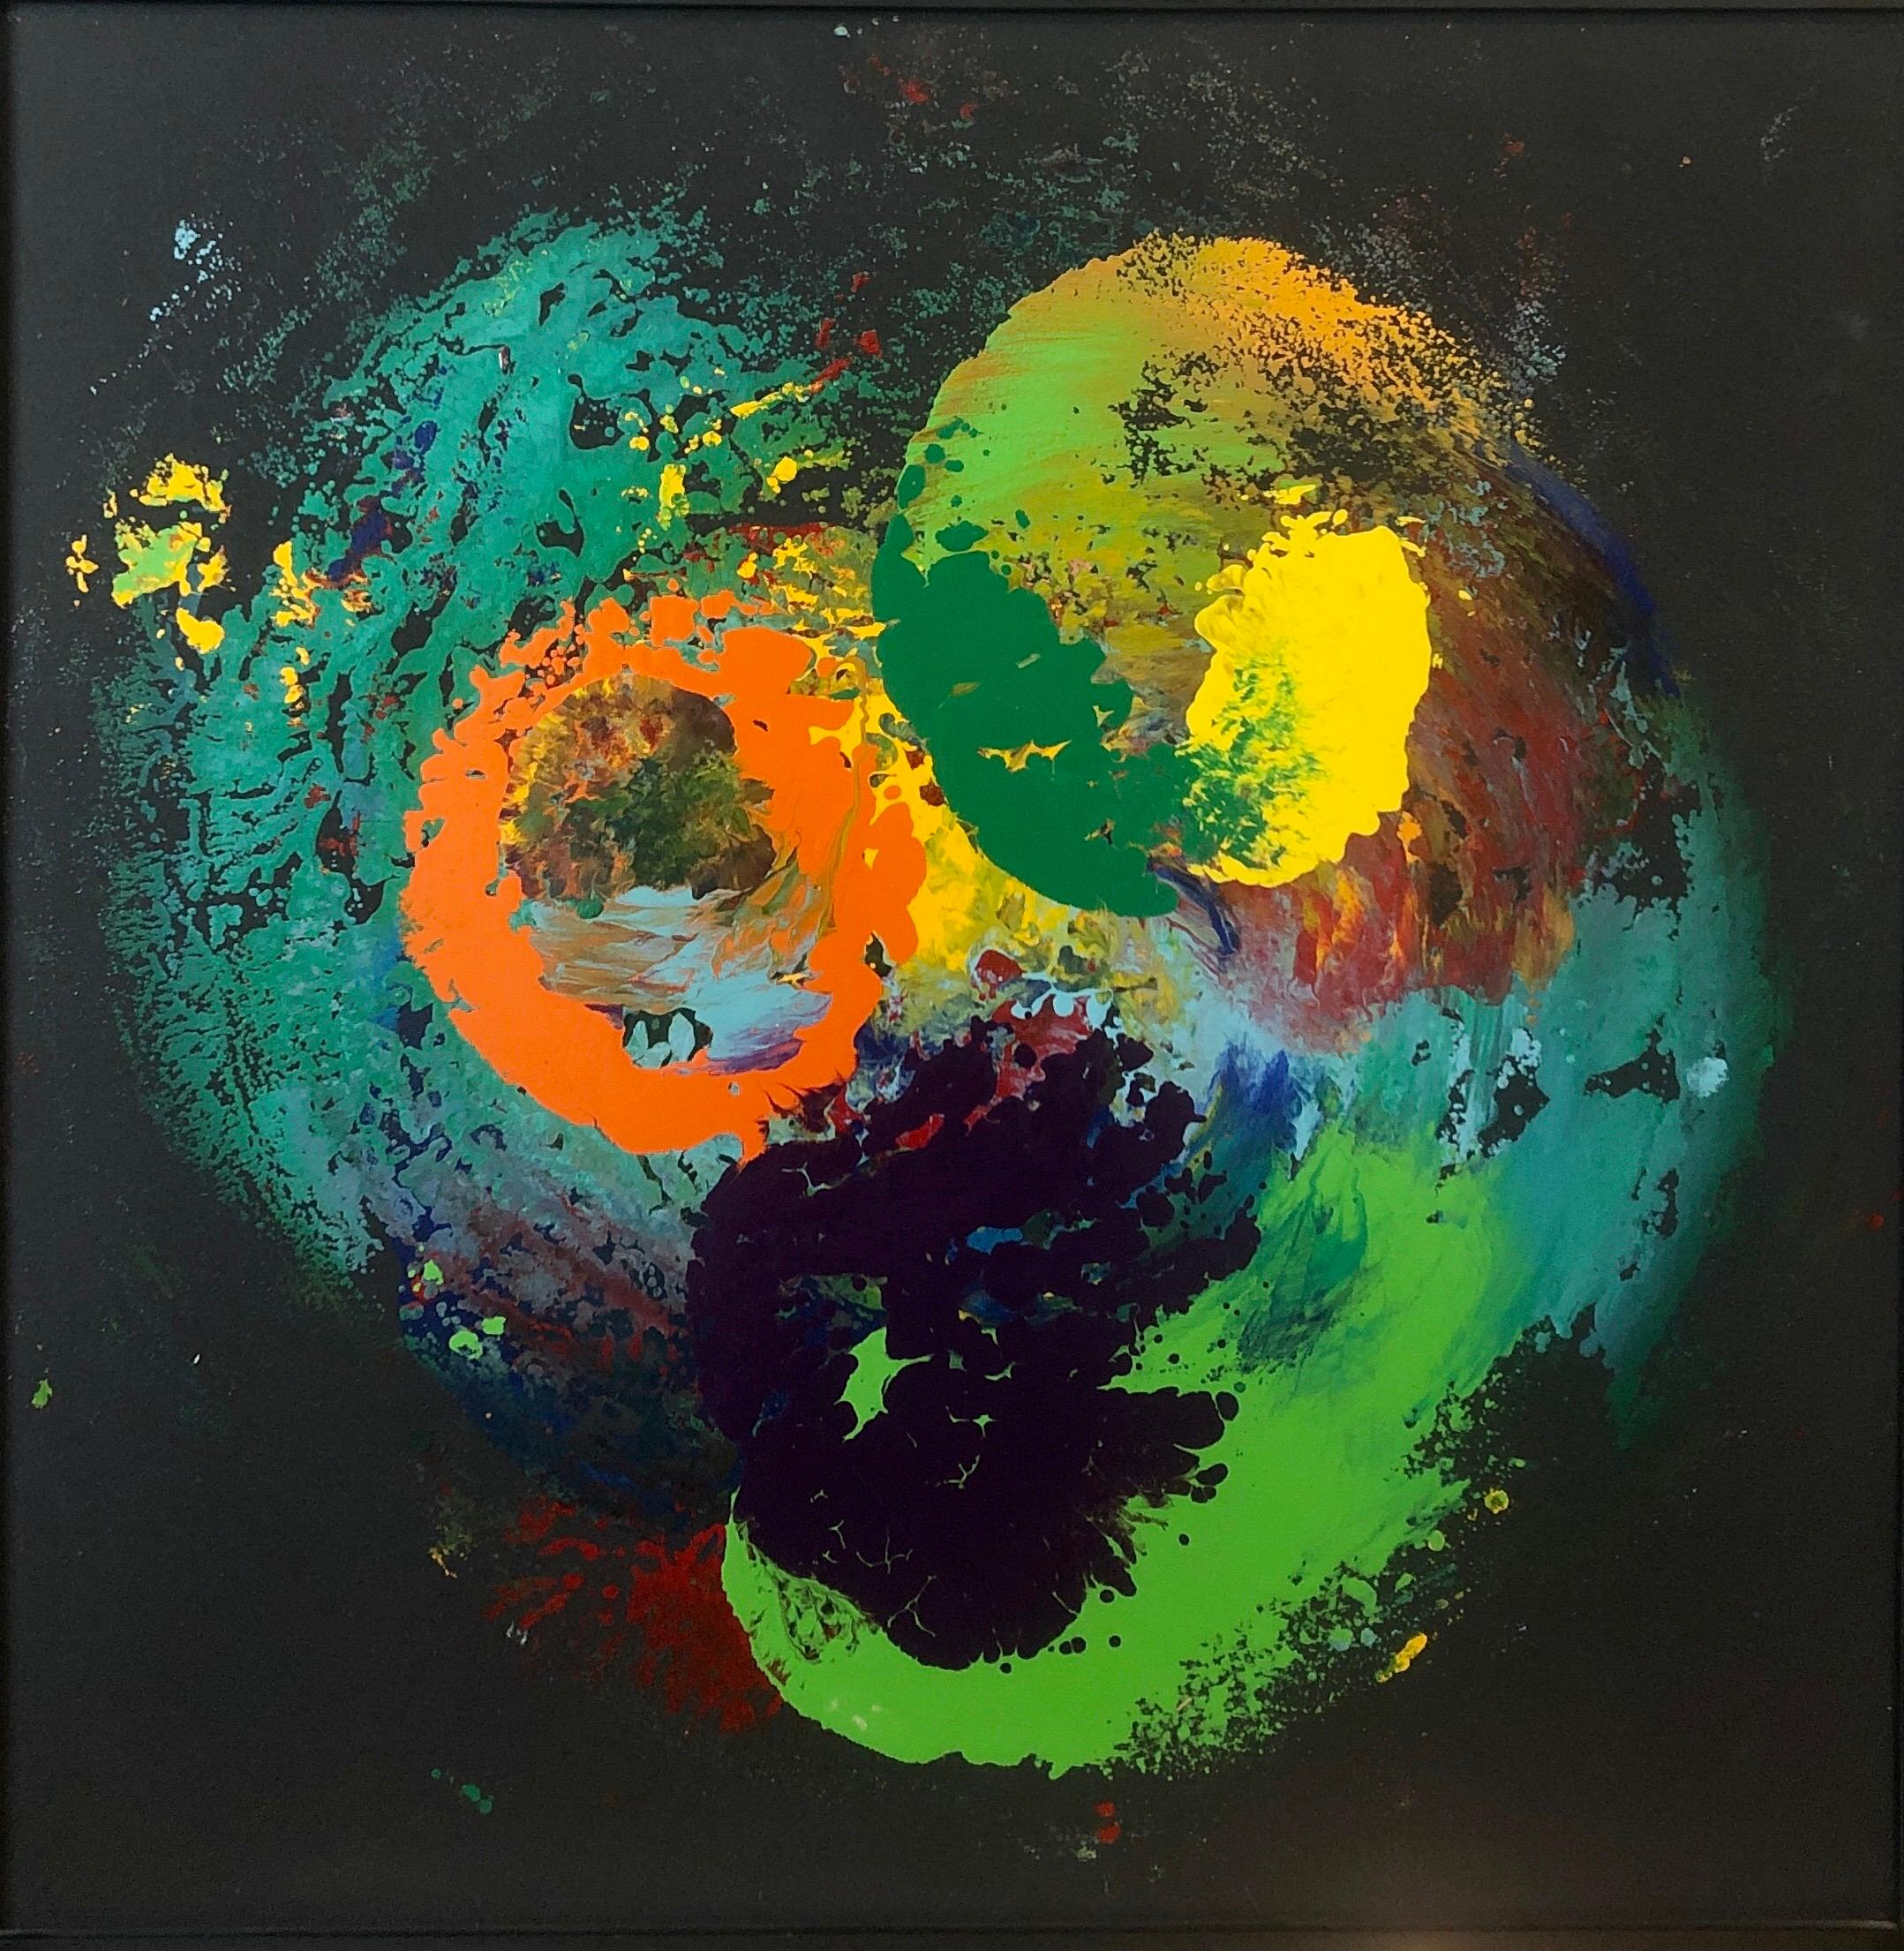 Charles Clough Picture Generation Abstract Expressionist Oil Enamel Painting